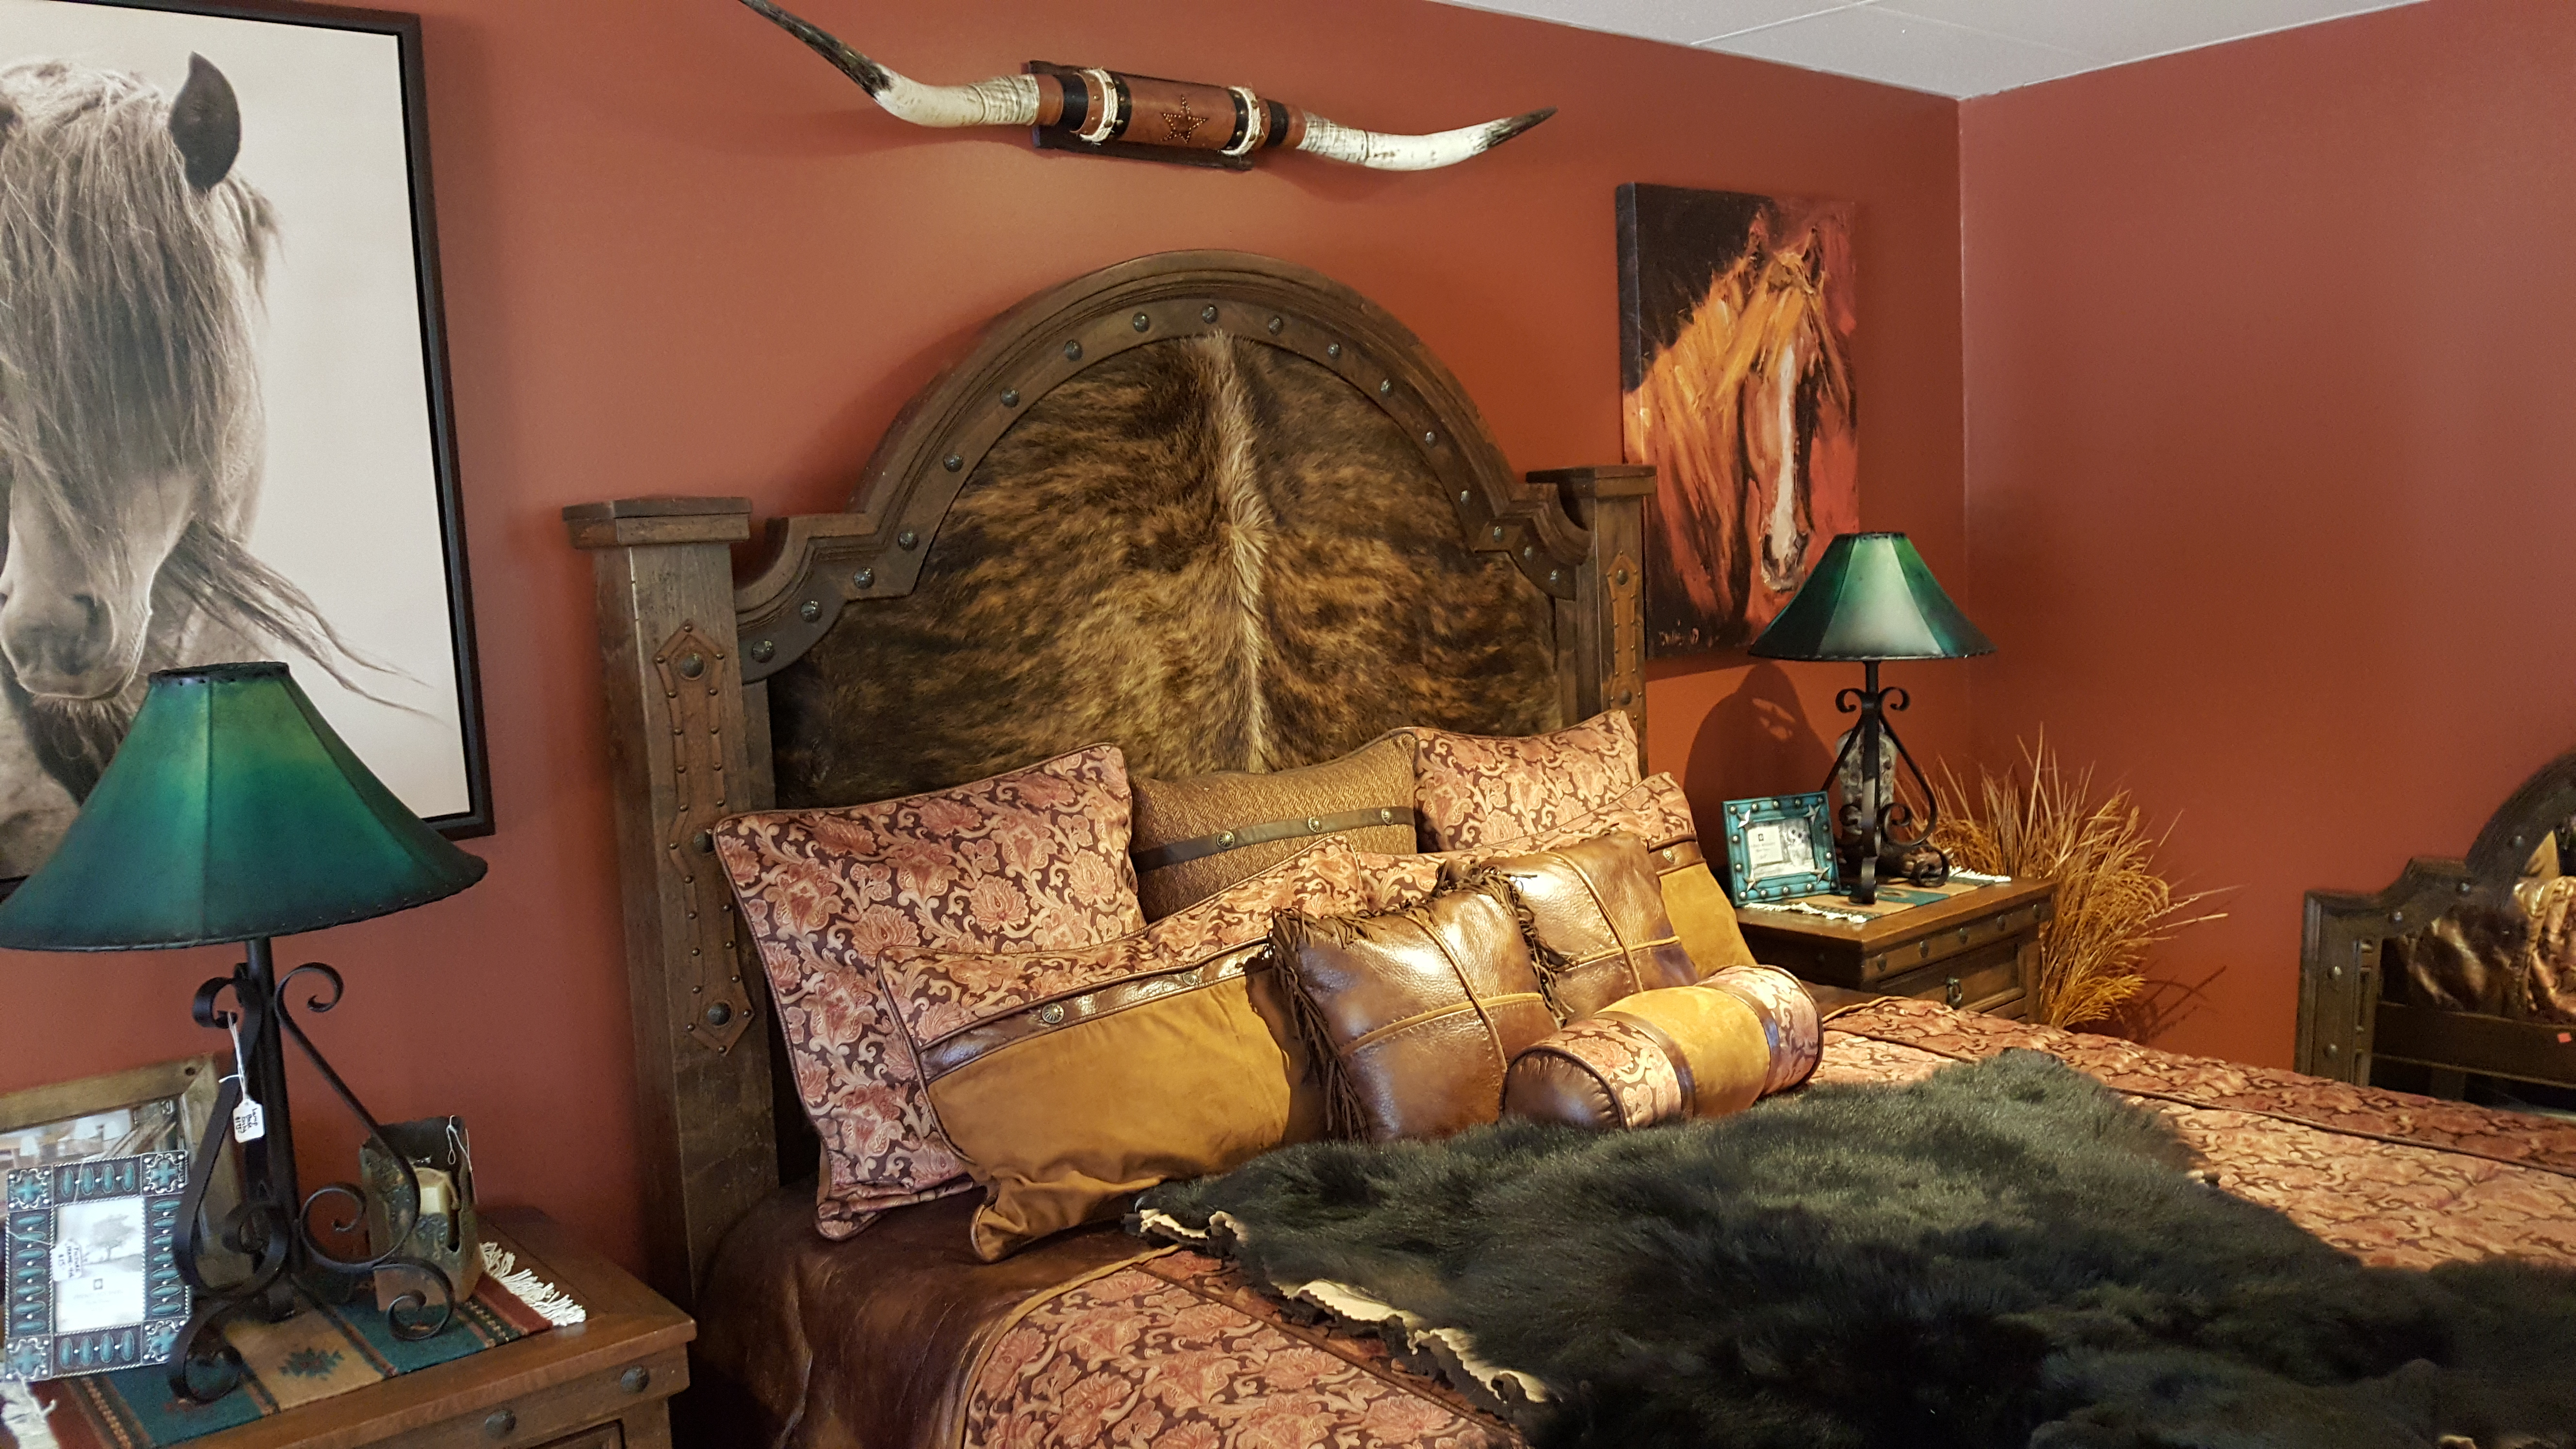 Western rustic bed with cowhide